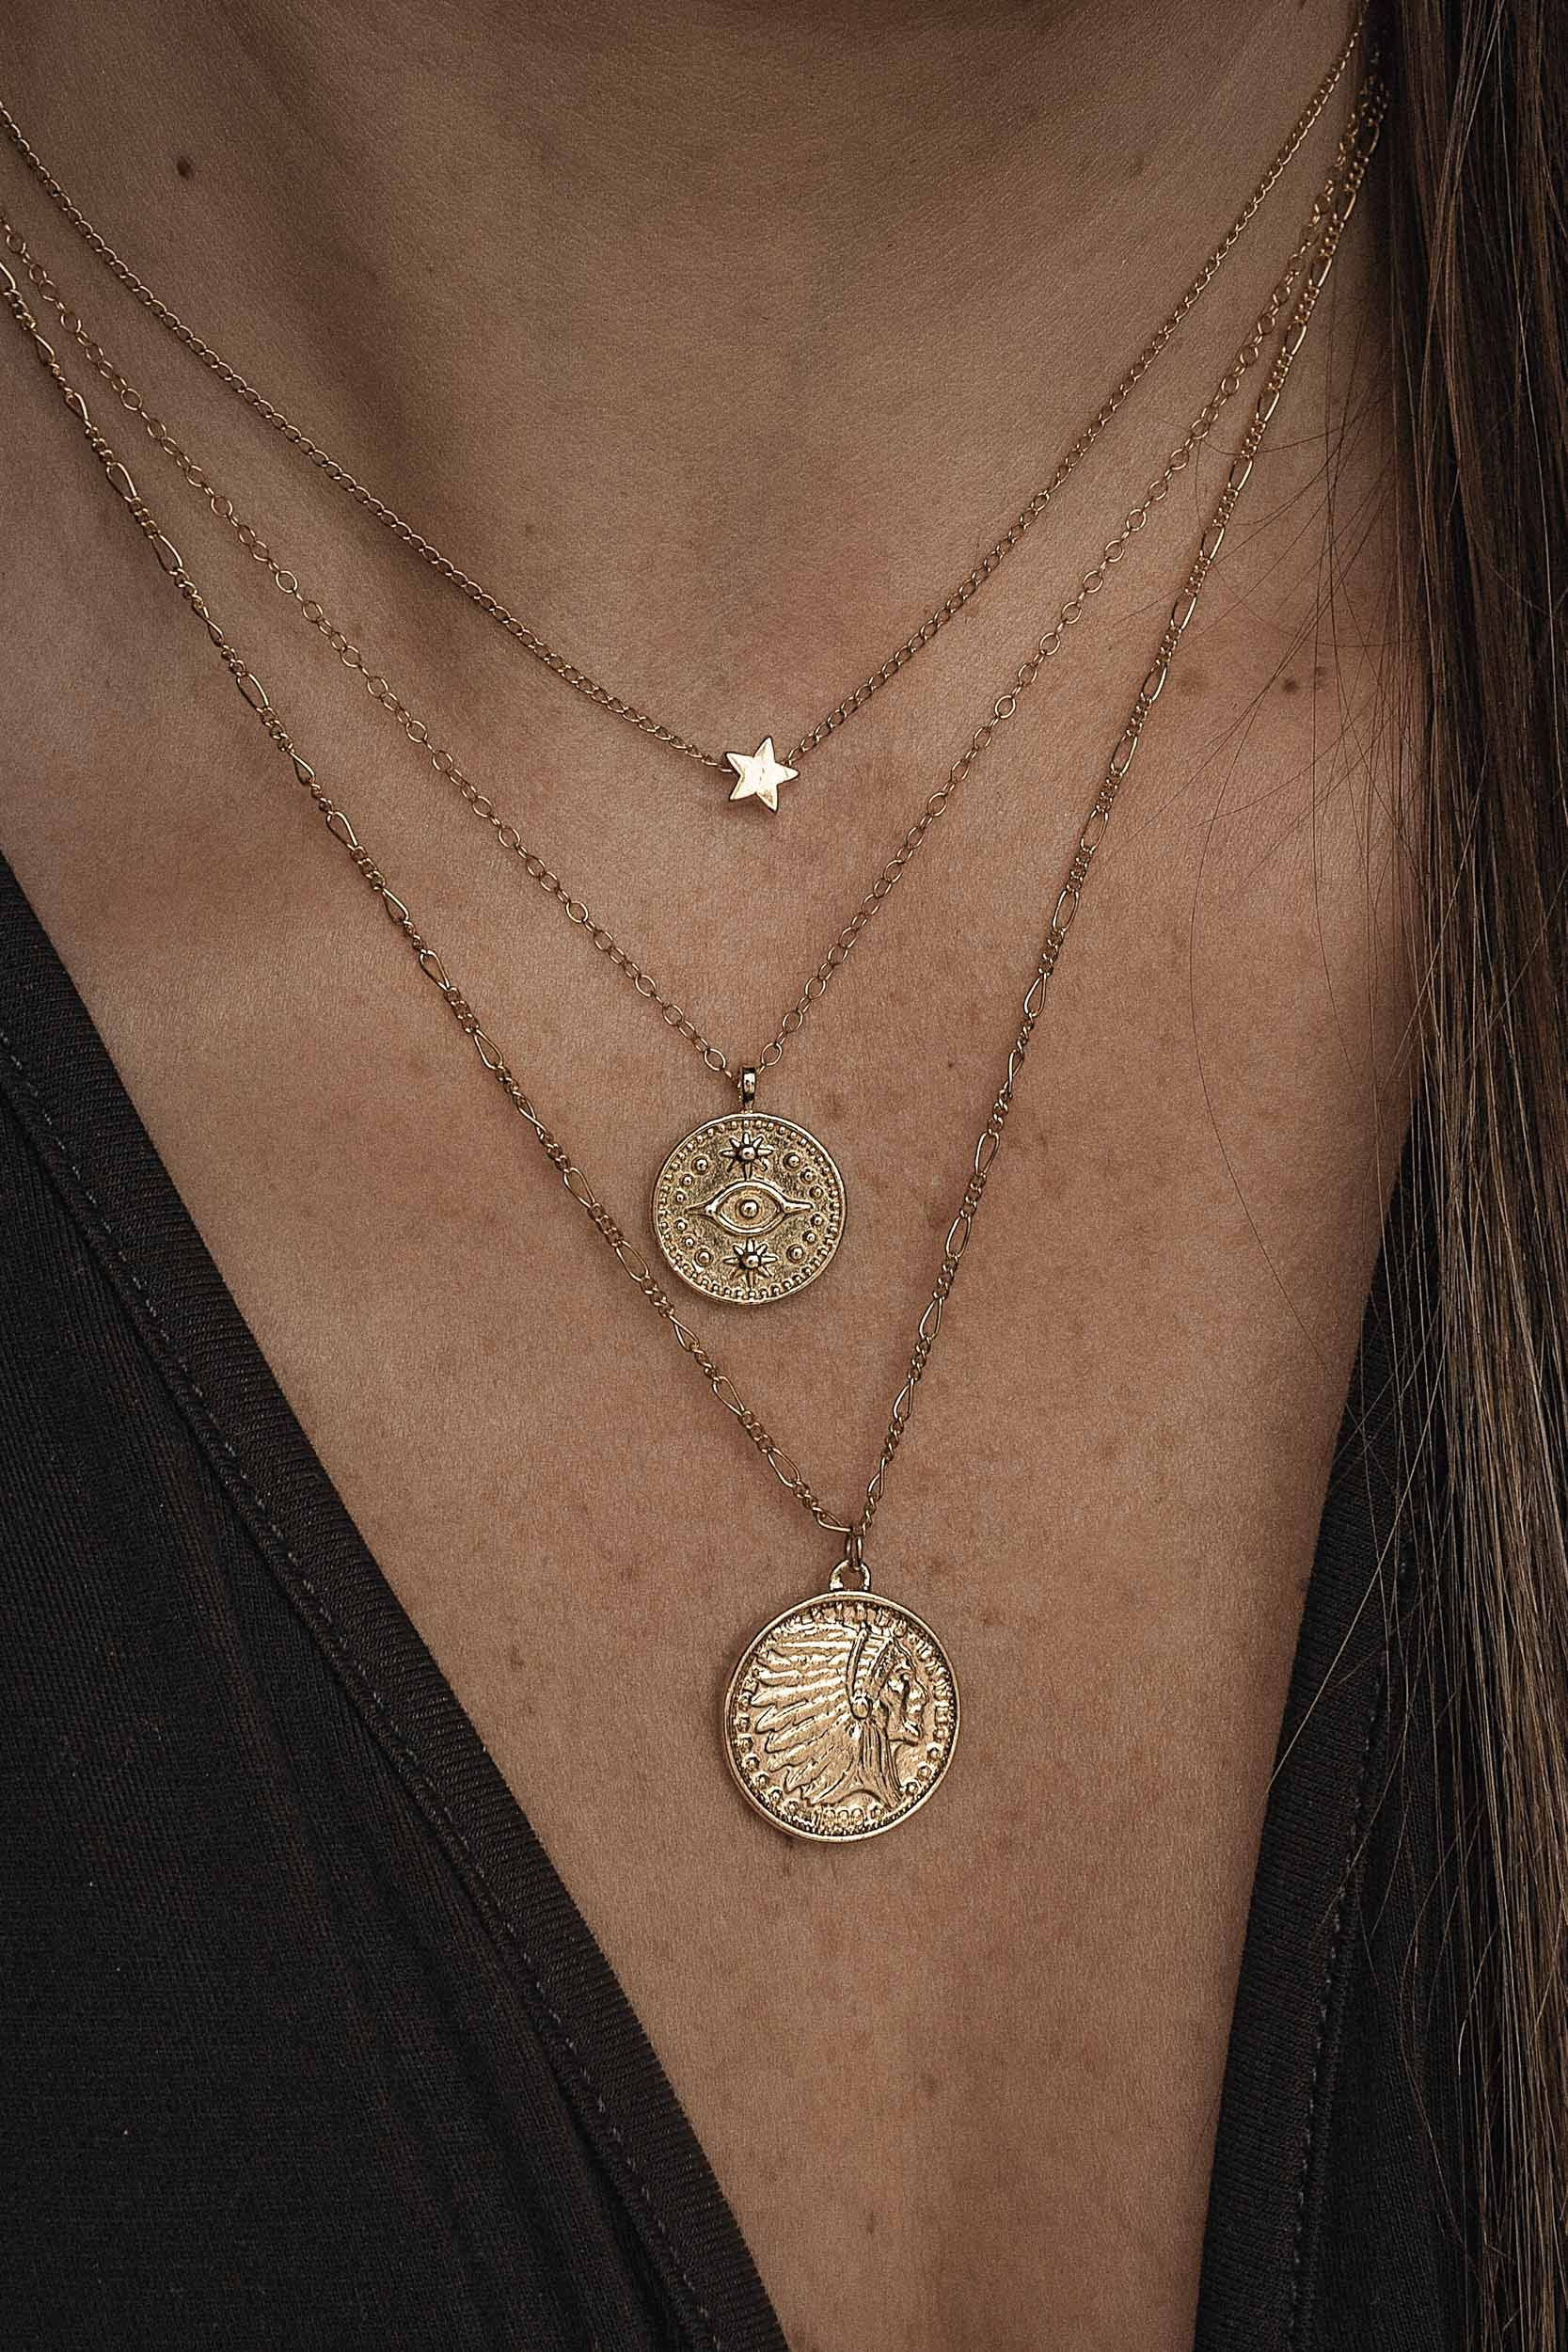 Handcrafted fine jewelry by @ckanani. Gold coin necklace. Travel jewelry. #wanderlust #goldjewelry #goldnecklace #necklace #jewelrynecklaces #giftforher #giftideas #miminalistjewelry #layerednecklace